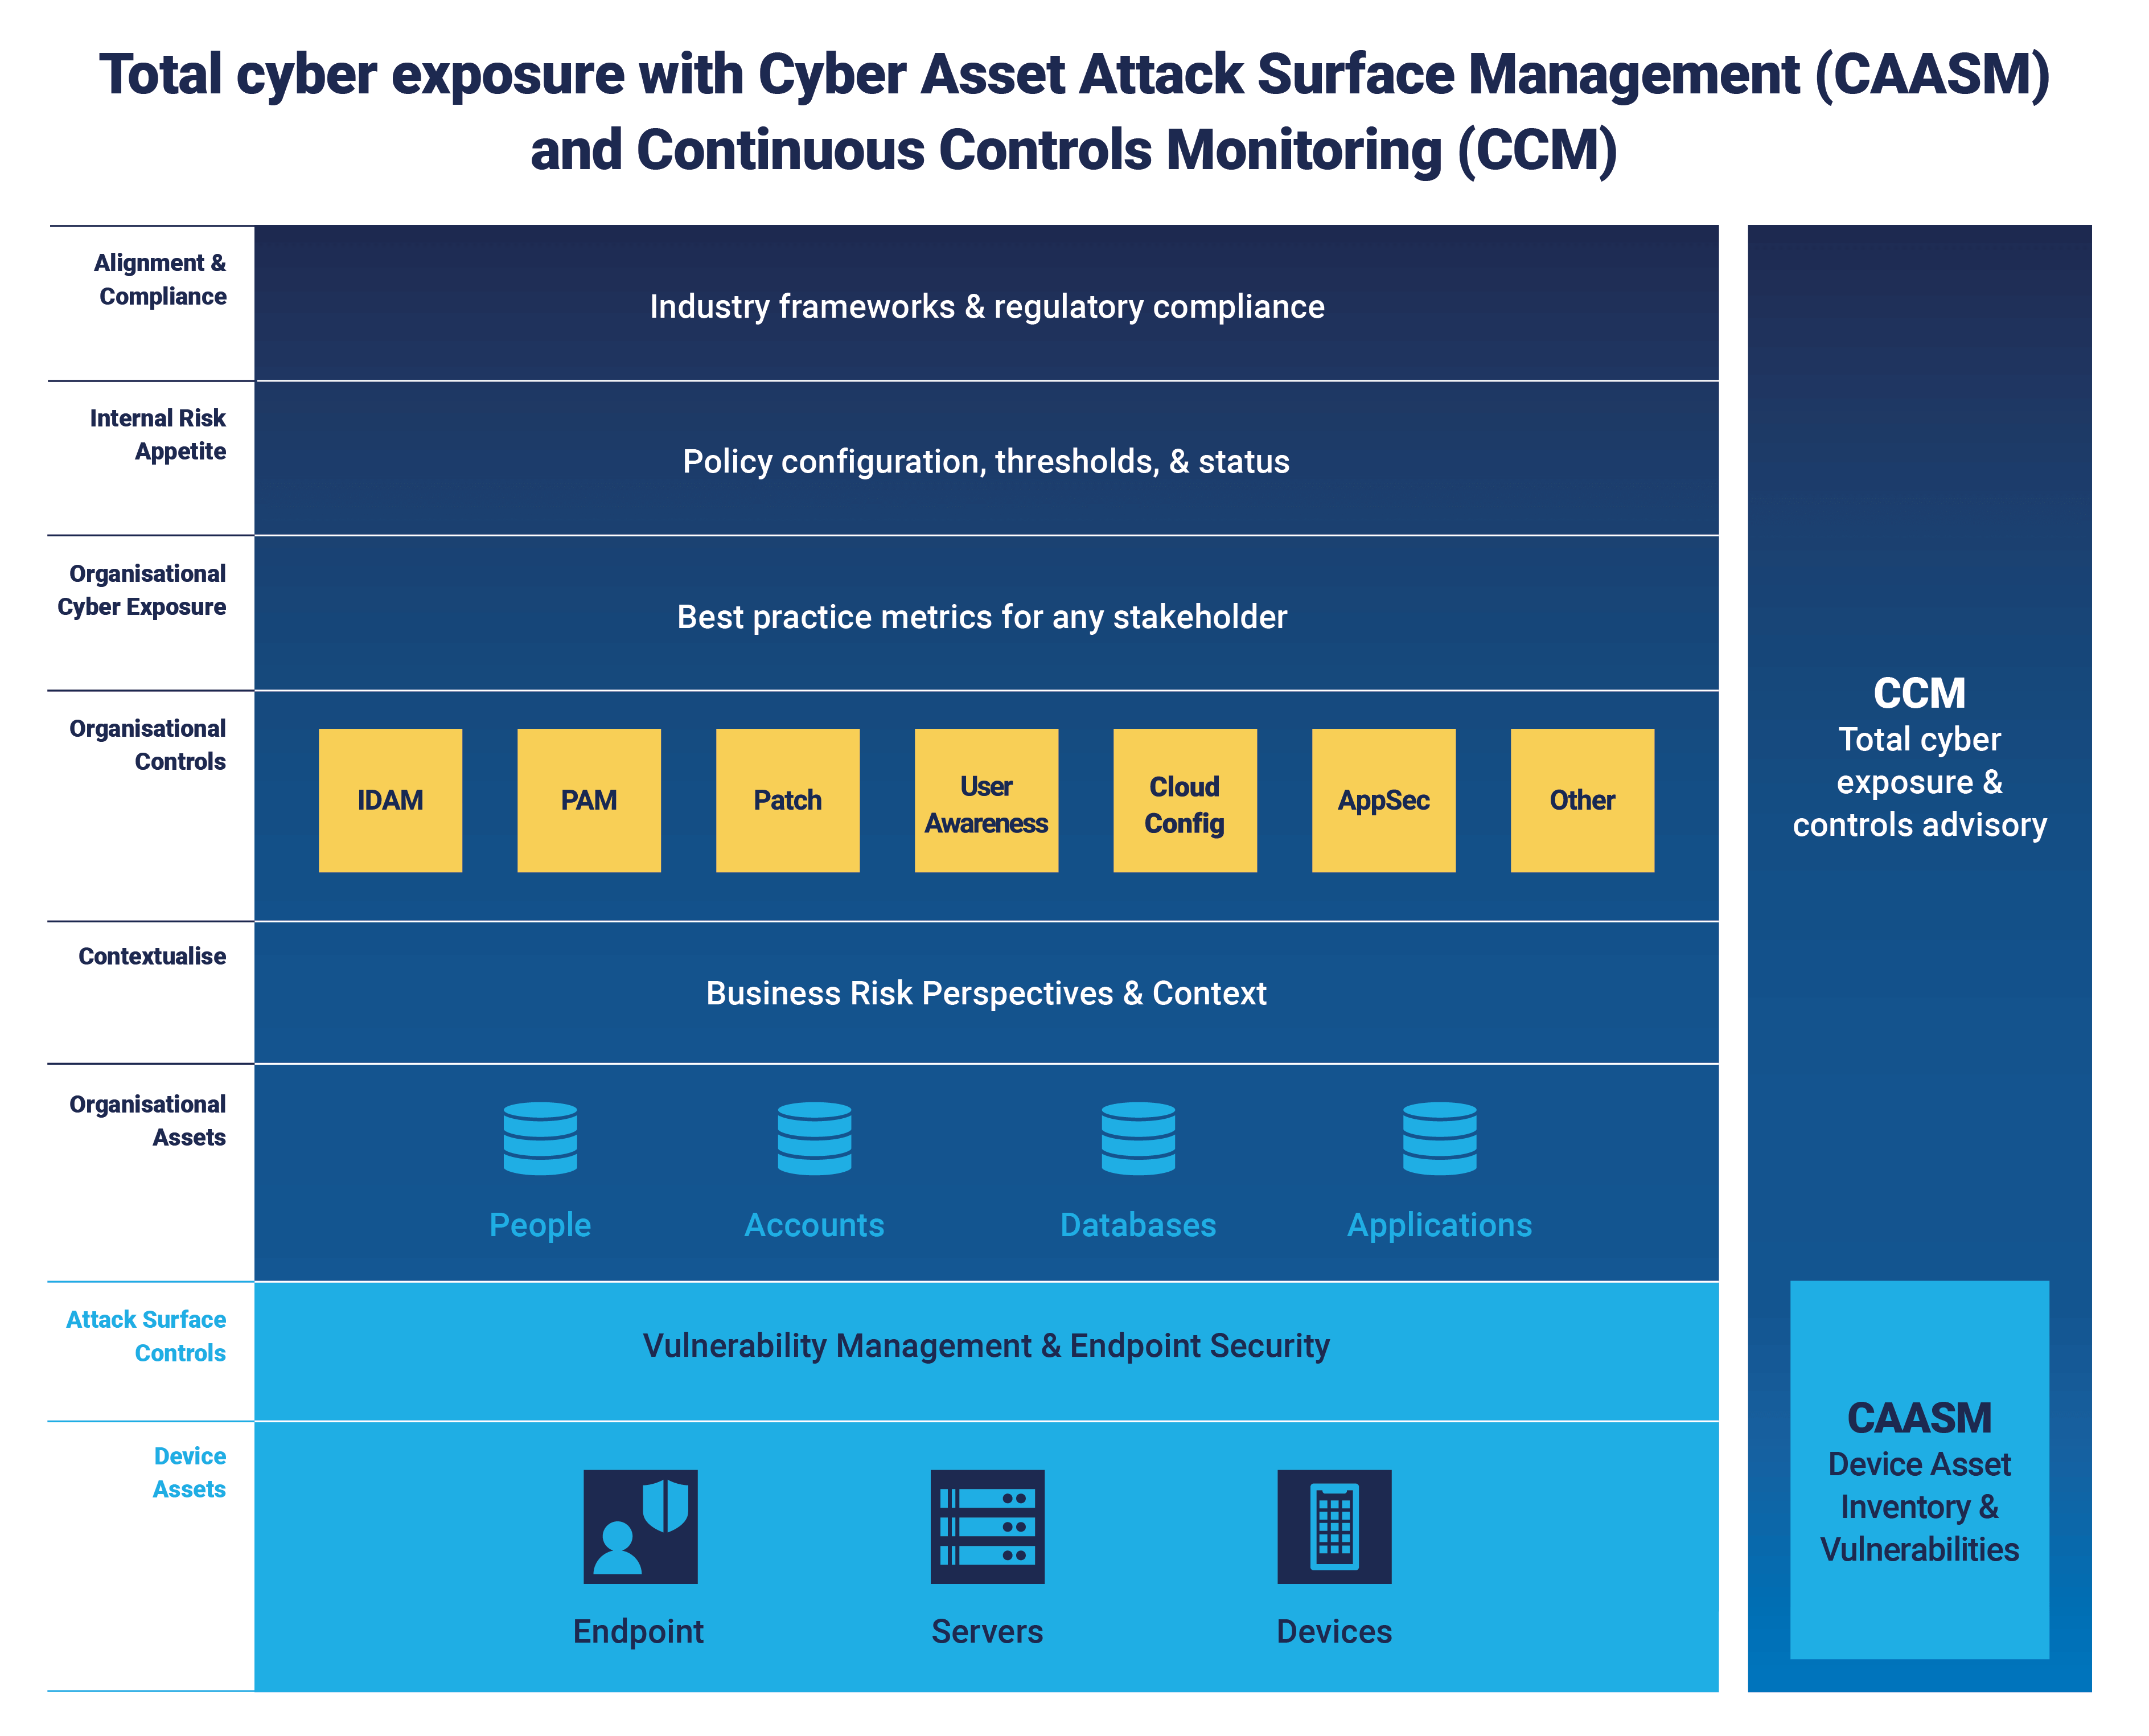 Total-cyber-exposure-with-CAASM-and-CCM_diagram